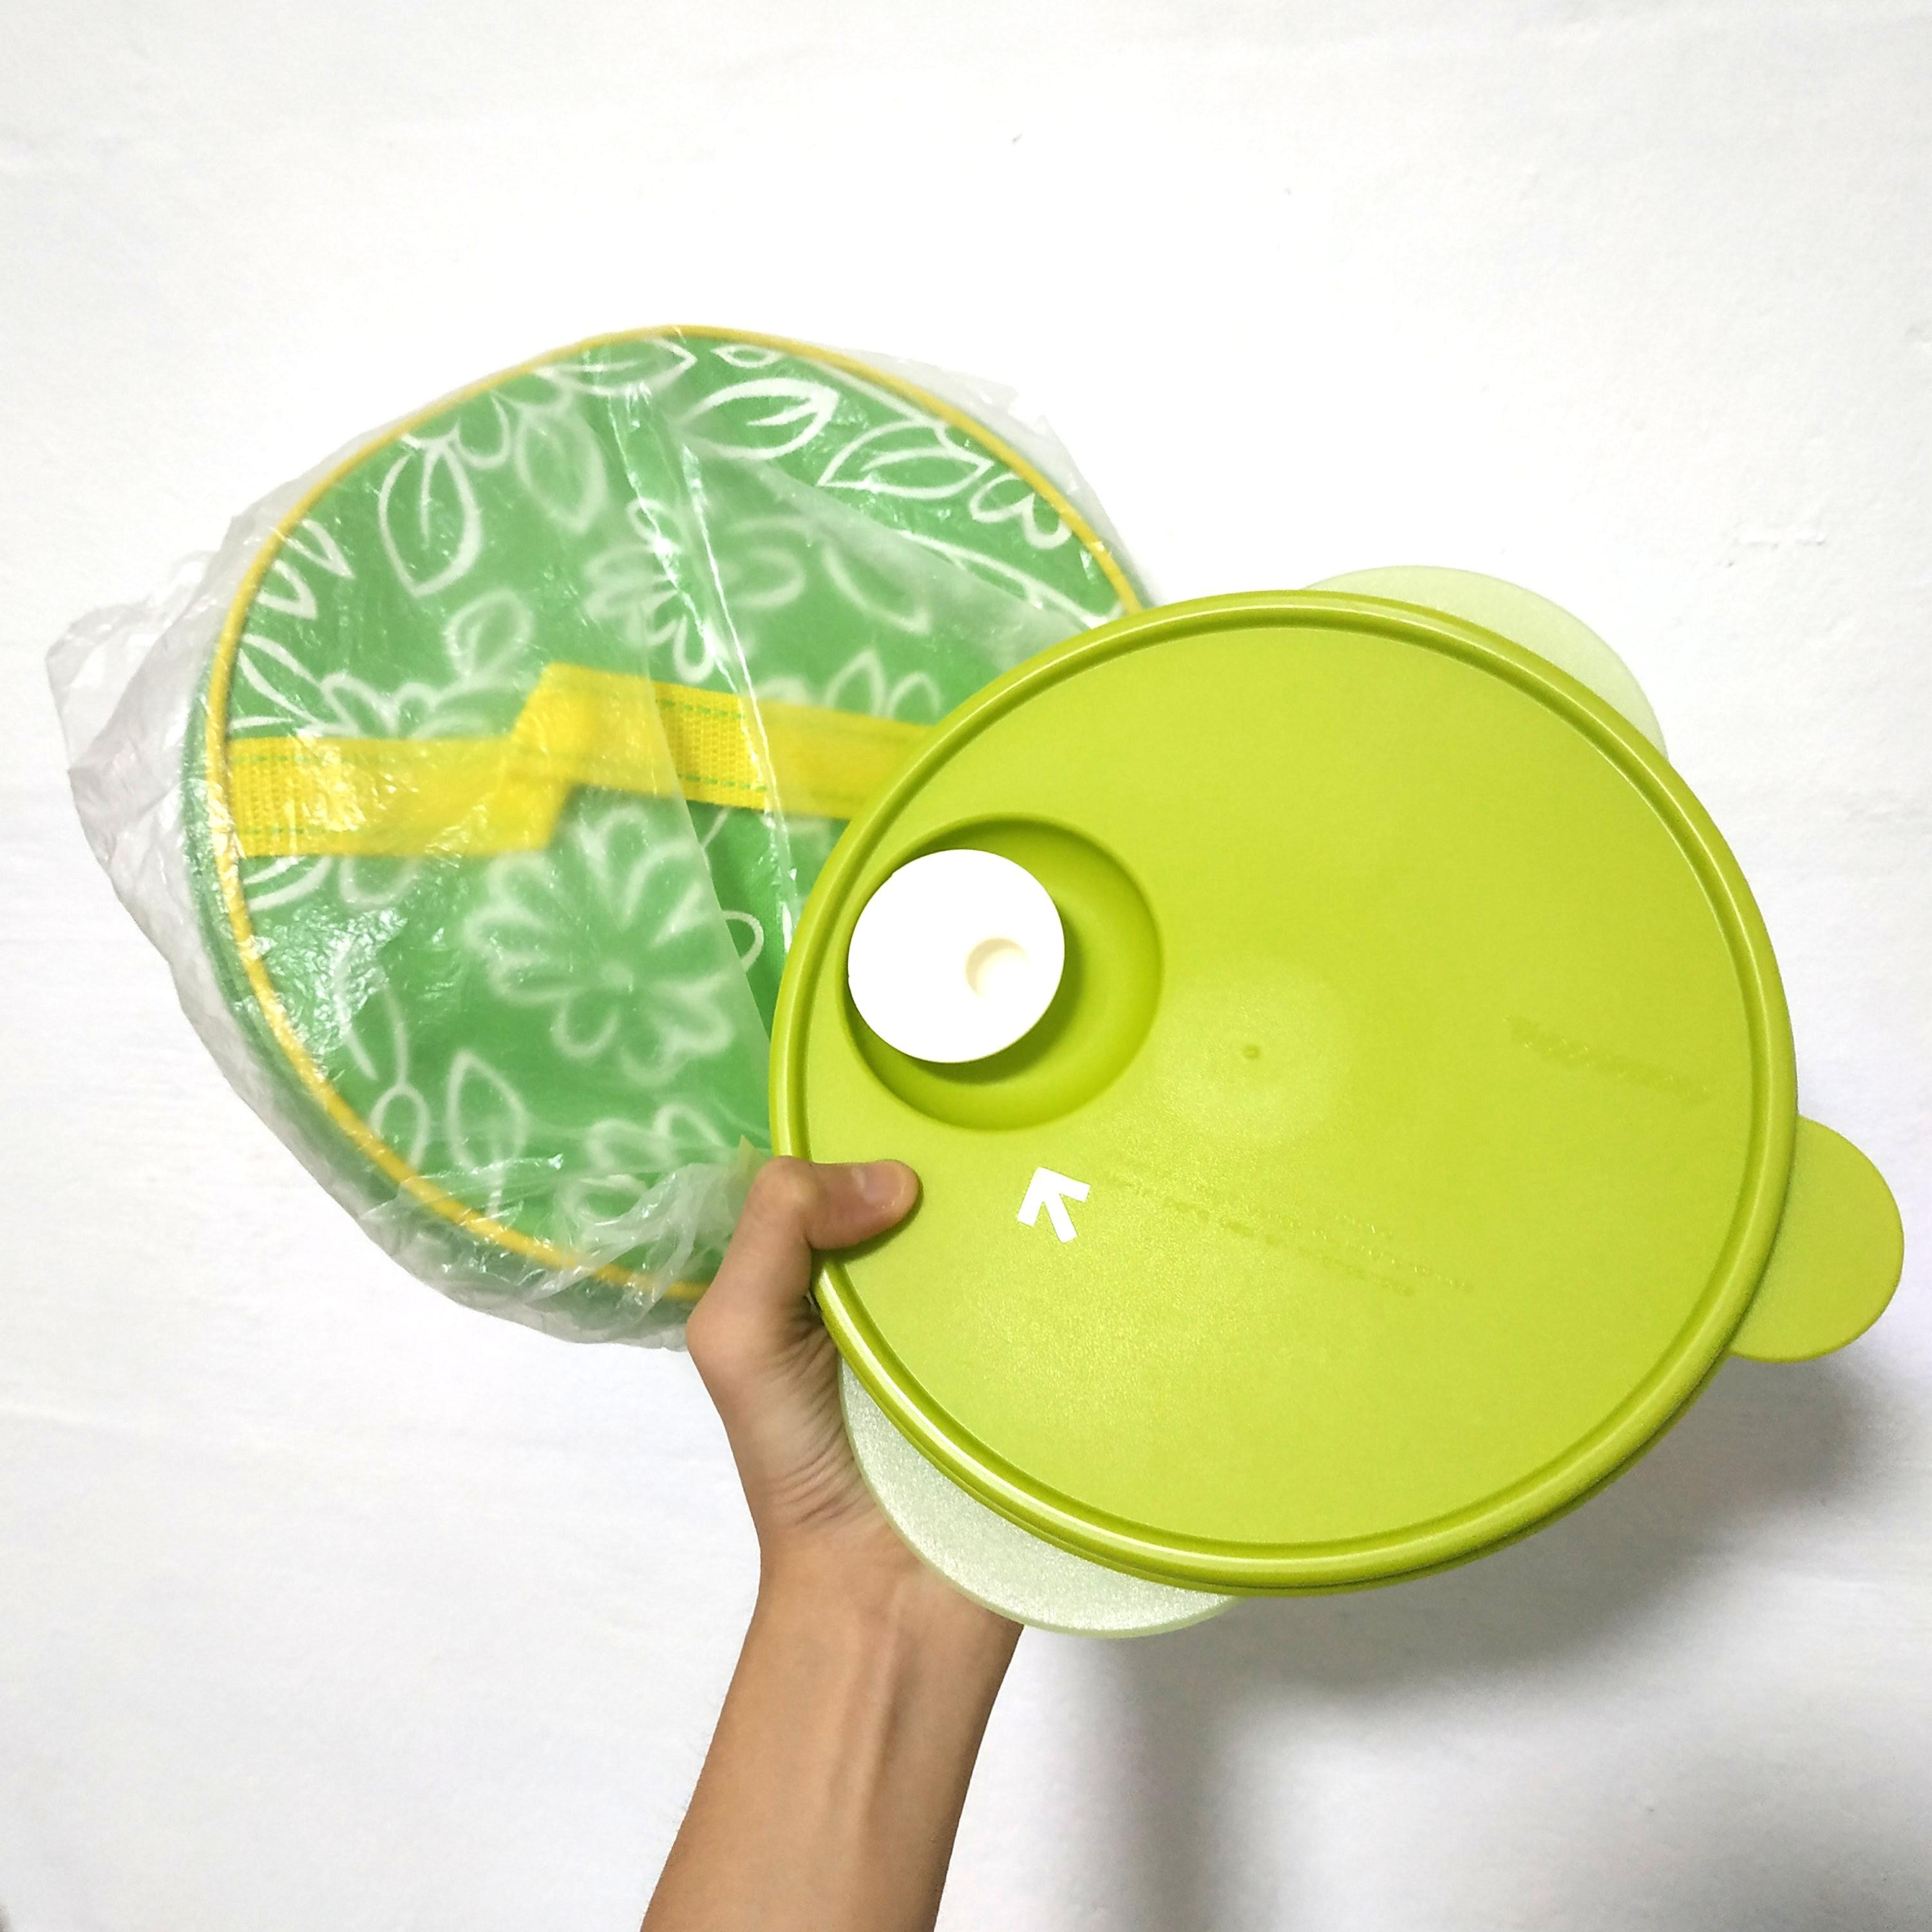 tupperware microwavable microwave safe reheatable divided lunch box container with free round carrier bag case